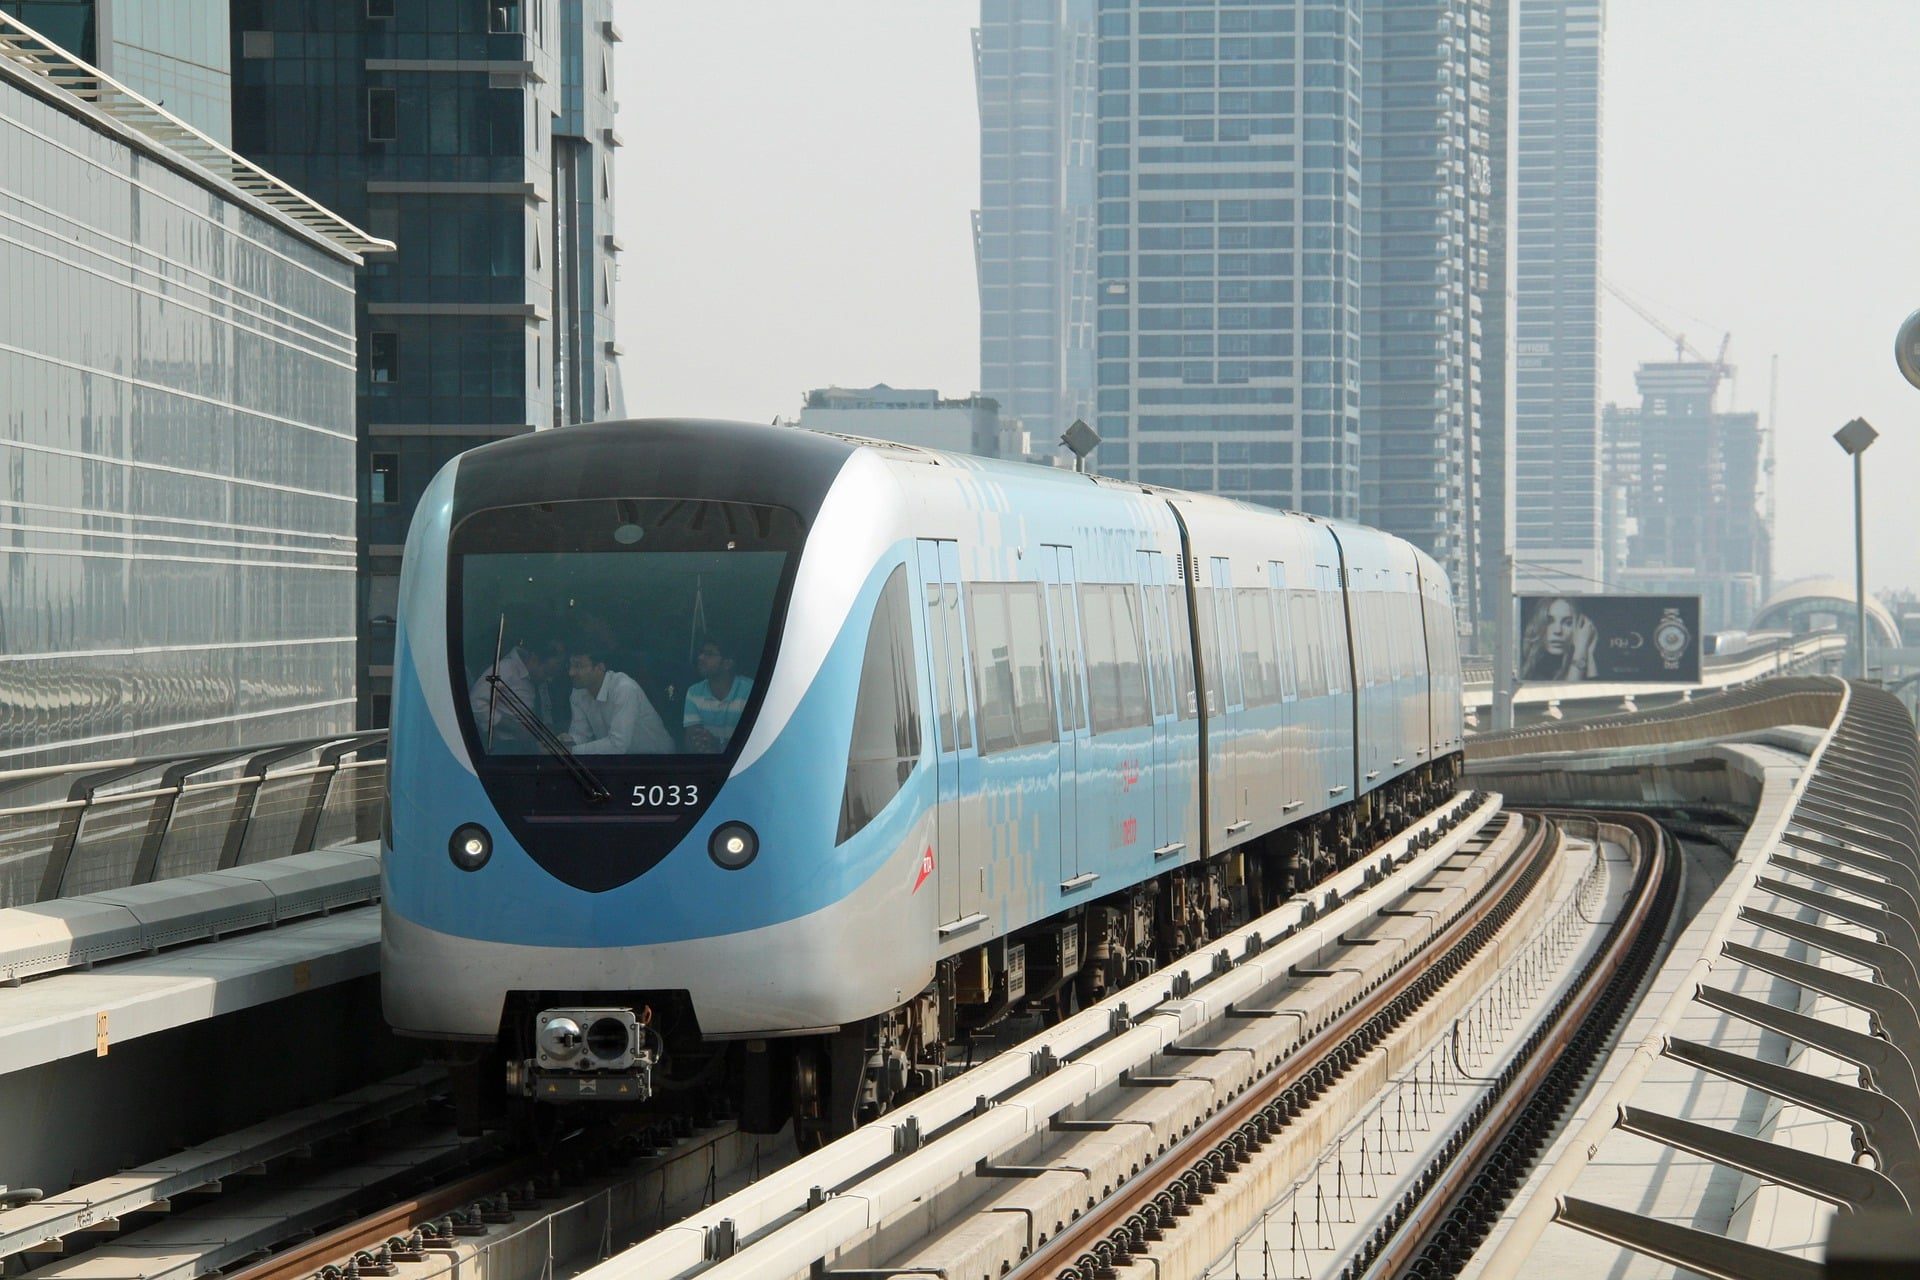 Pixabay | The Dubai Metro